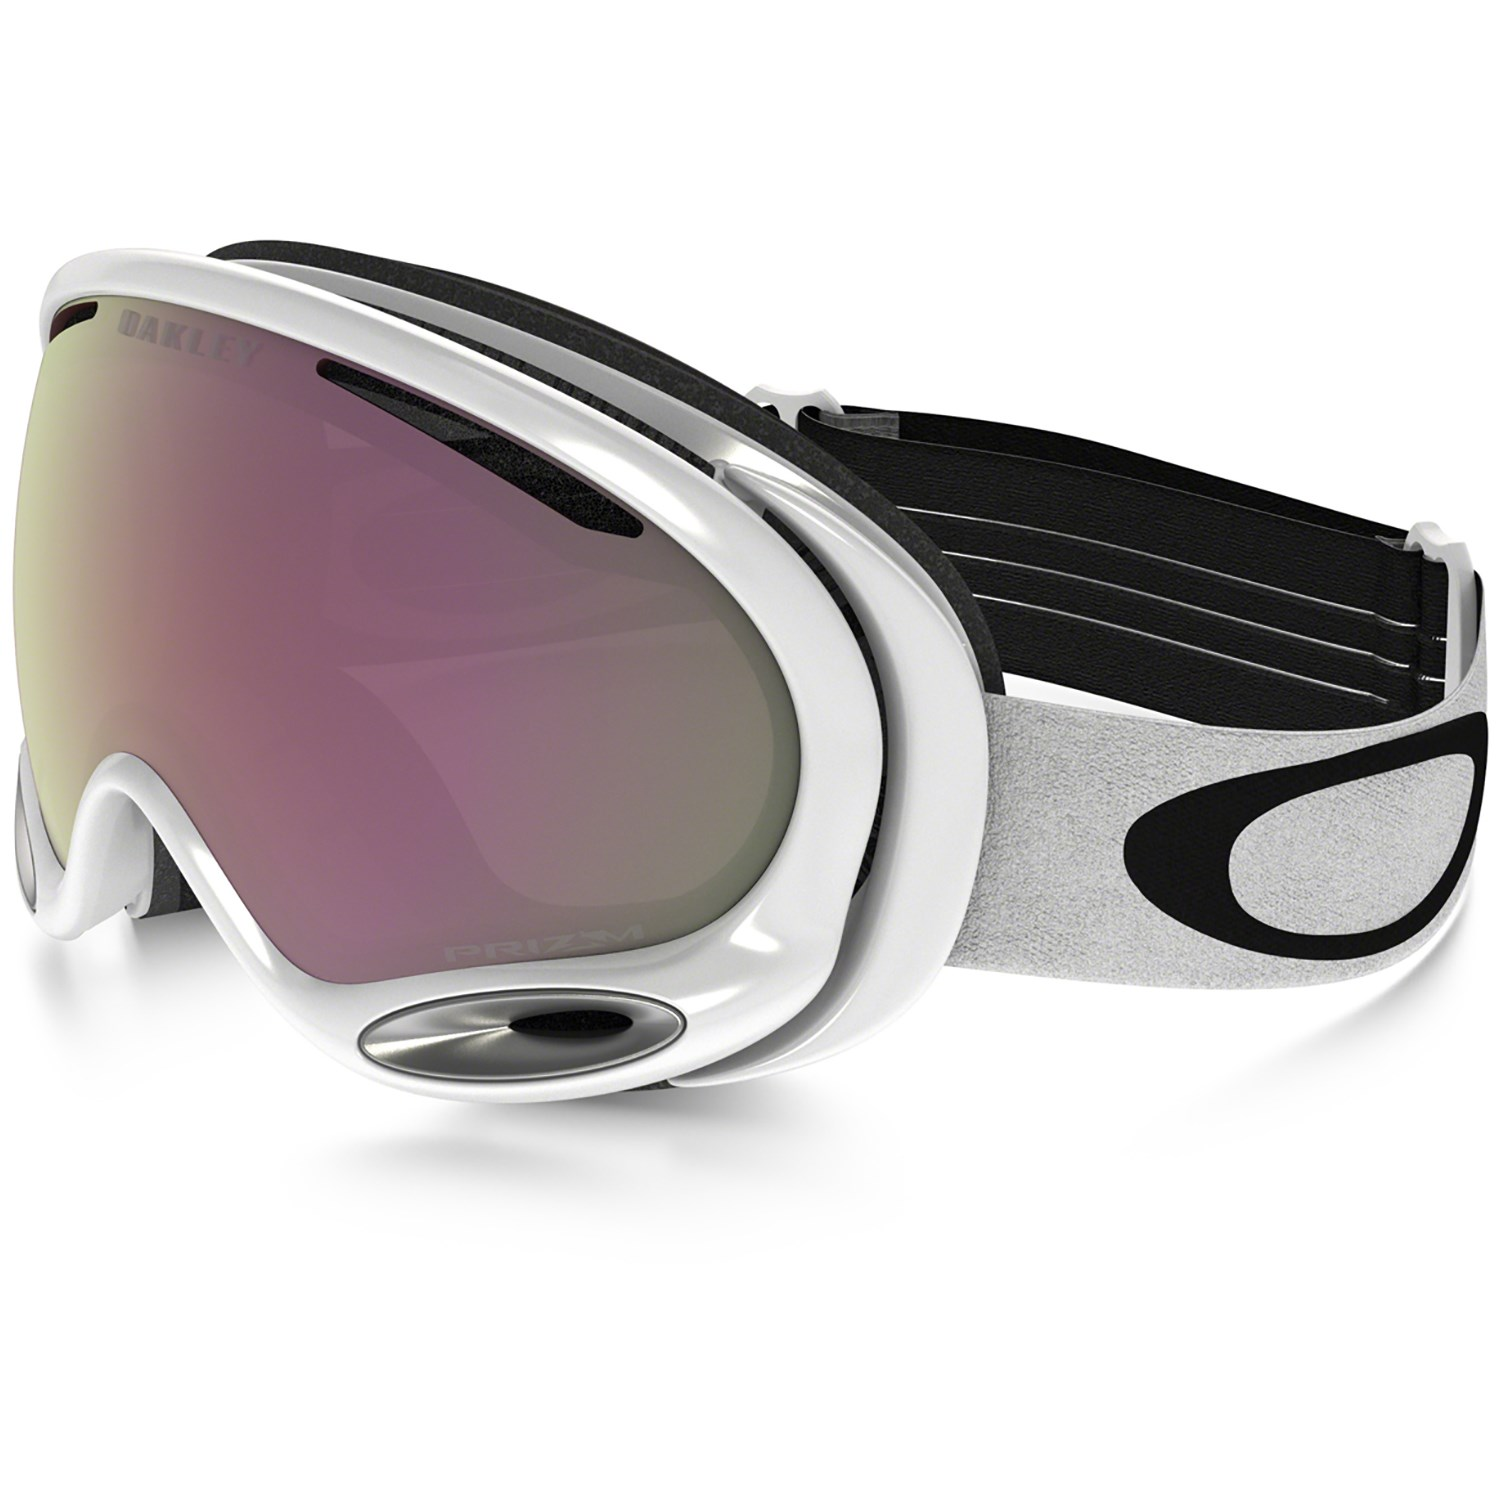 374839a4bbd69 Oakley A Frame 2.0 Asian Fit Goggles